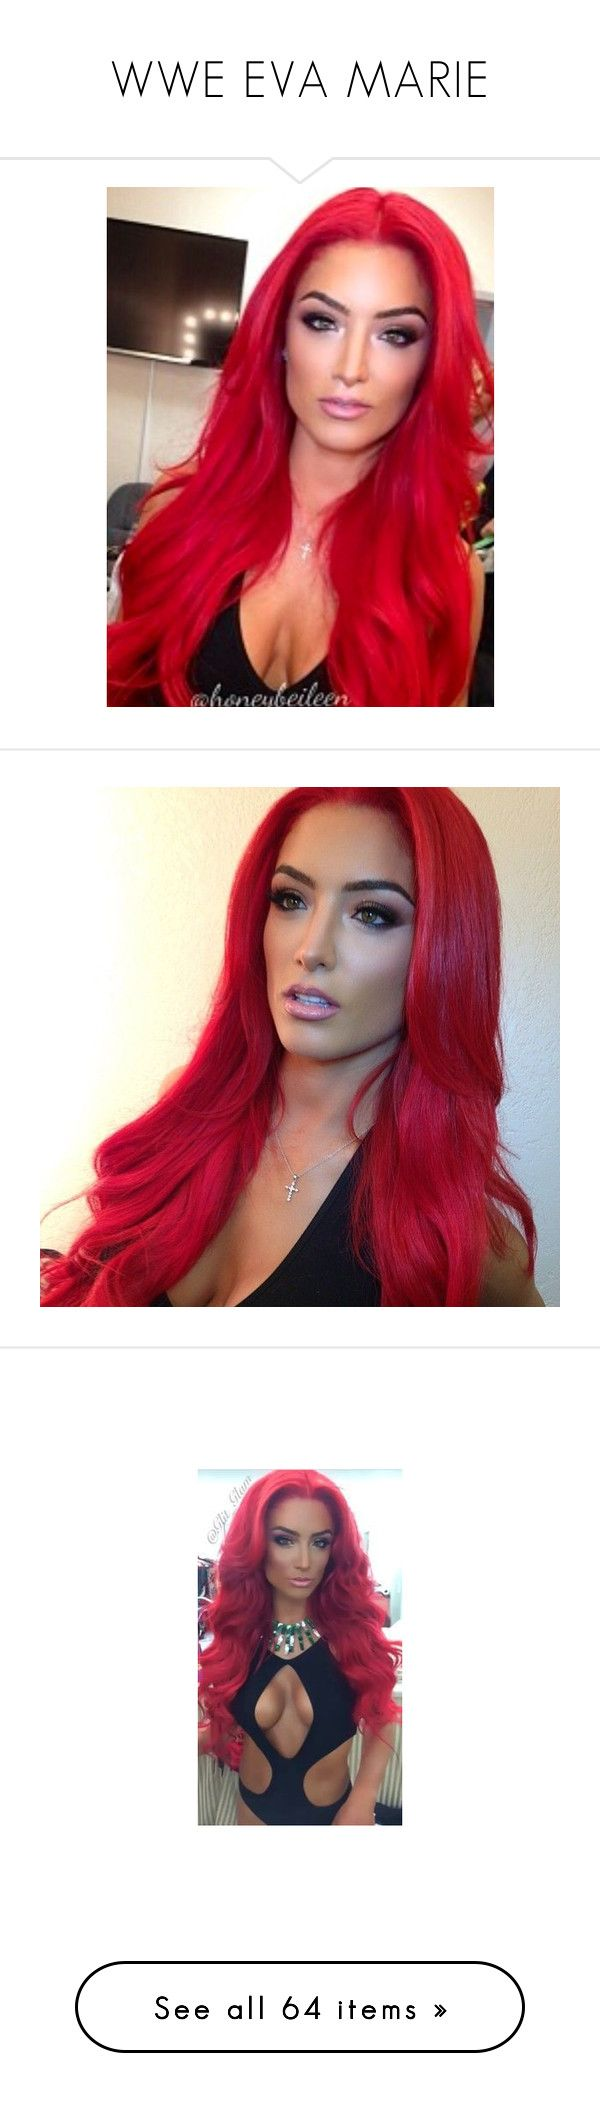 """WWE EVA MARIE"" by adelaida0912 ❤ liked on Polyvore featuring hair, eva marie, wwe, pictures, wrestling, divas and people"